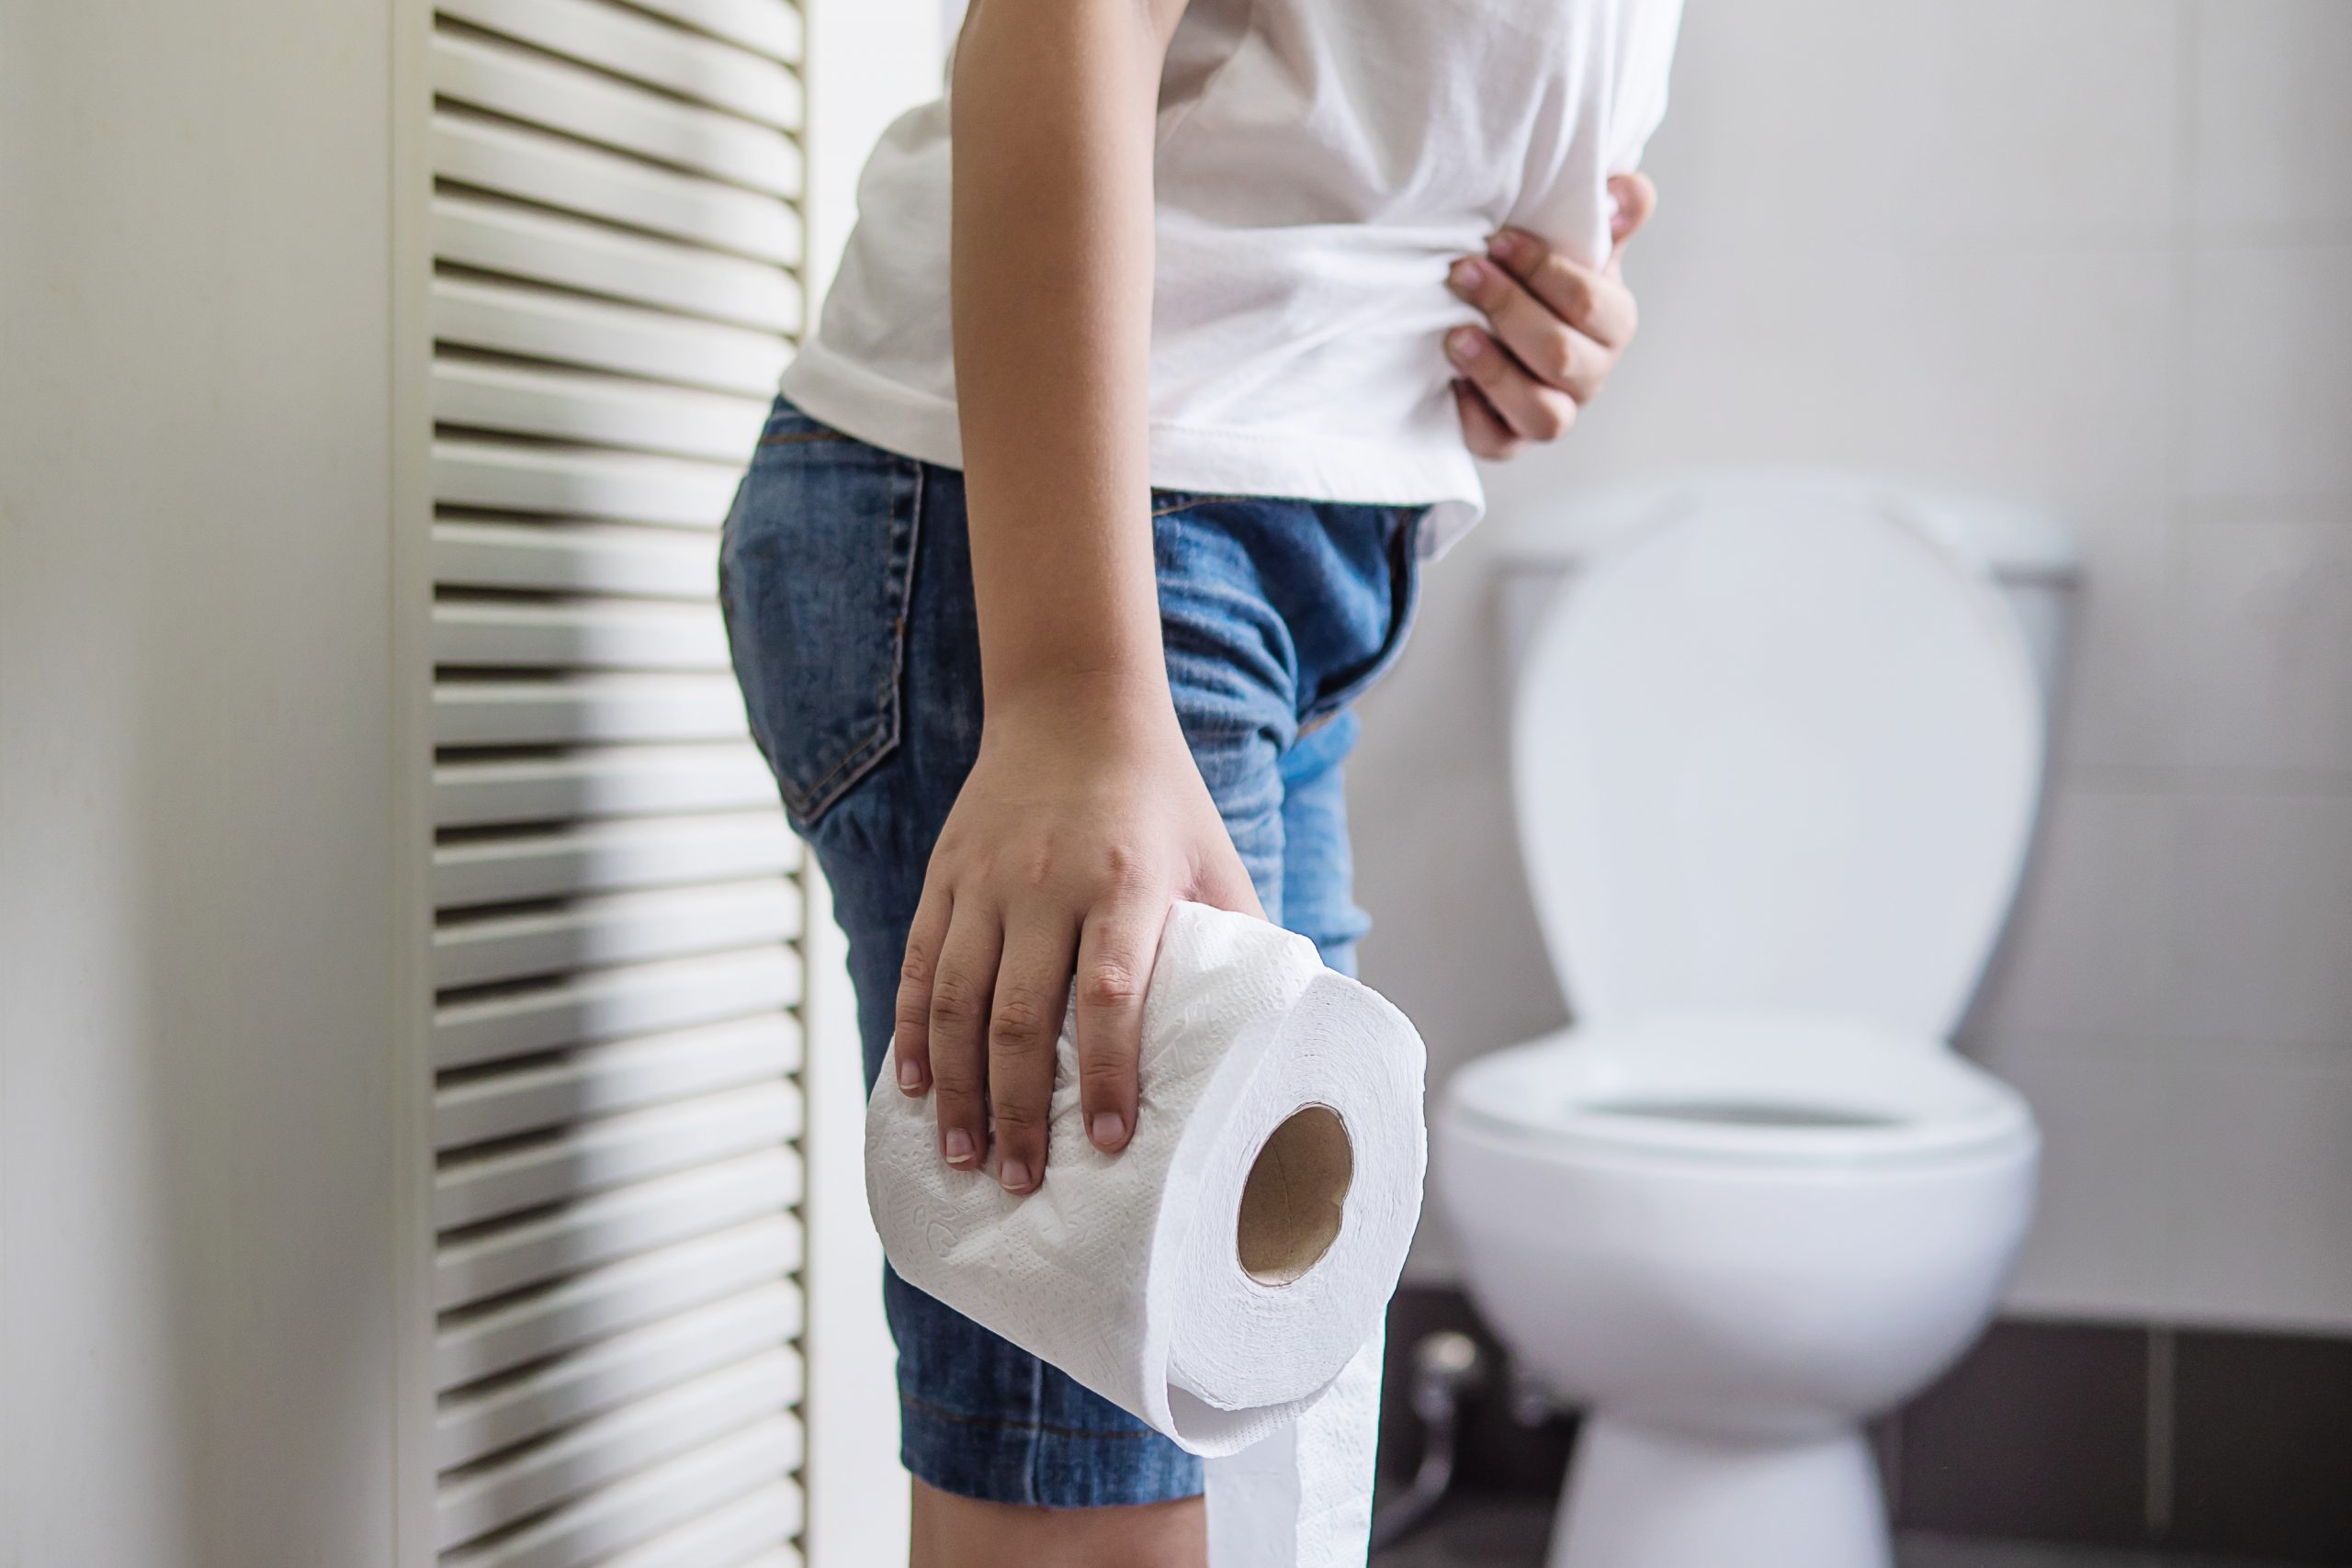 asian boy sitting toilet bowl holding tissue paper health problem concept scaled